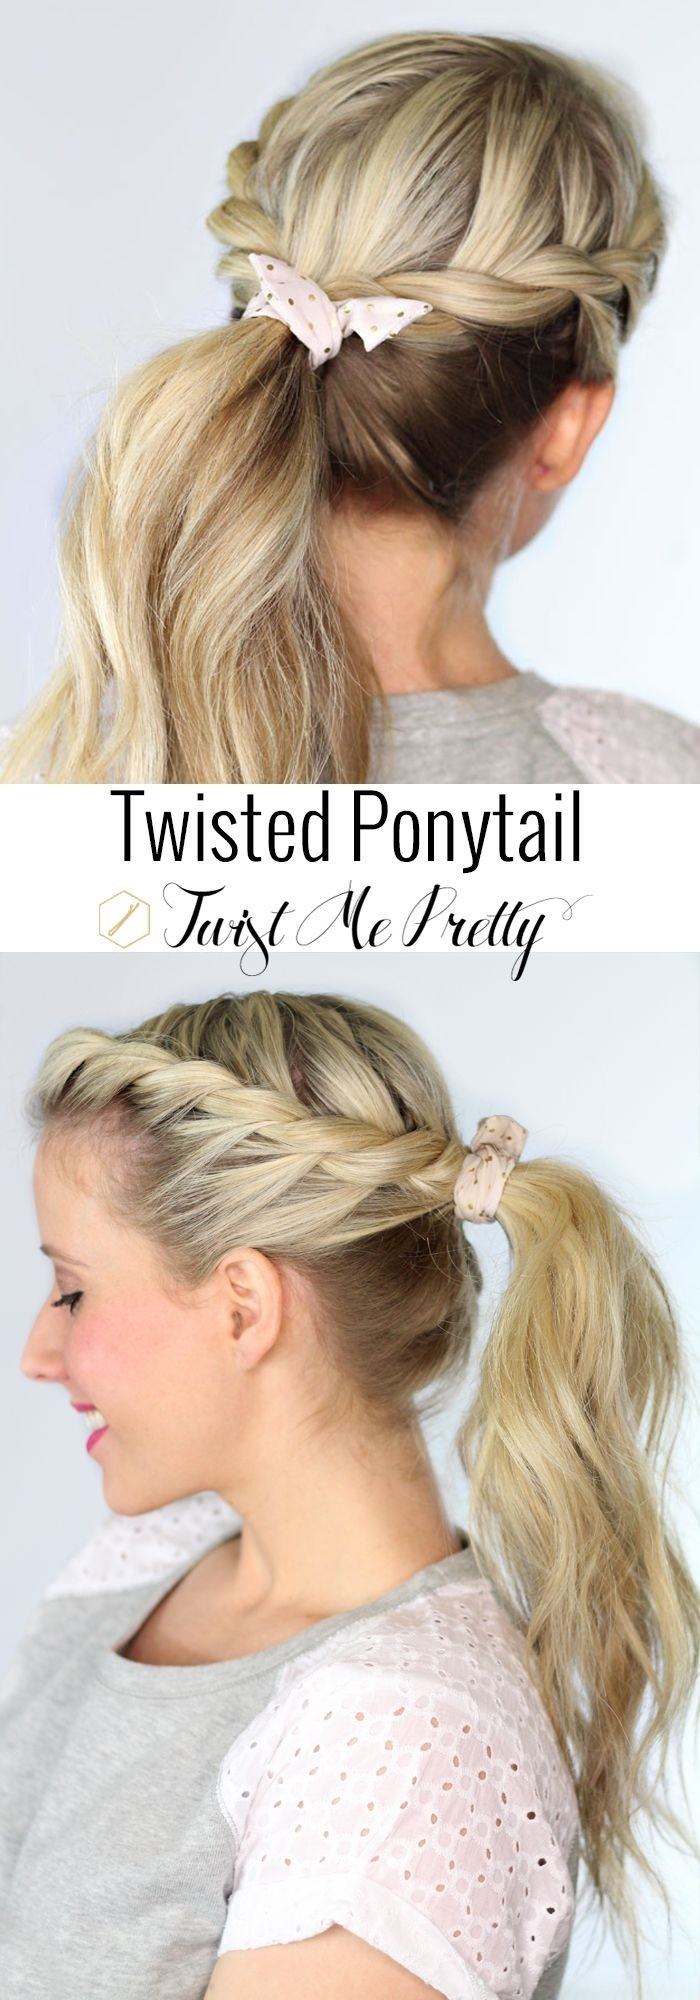 Hairstyle Ponytail : 12 Cool Ponytail Hairstyles for Women 2015 - Pretty Designs